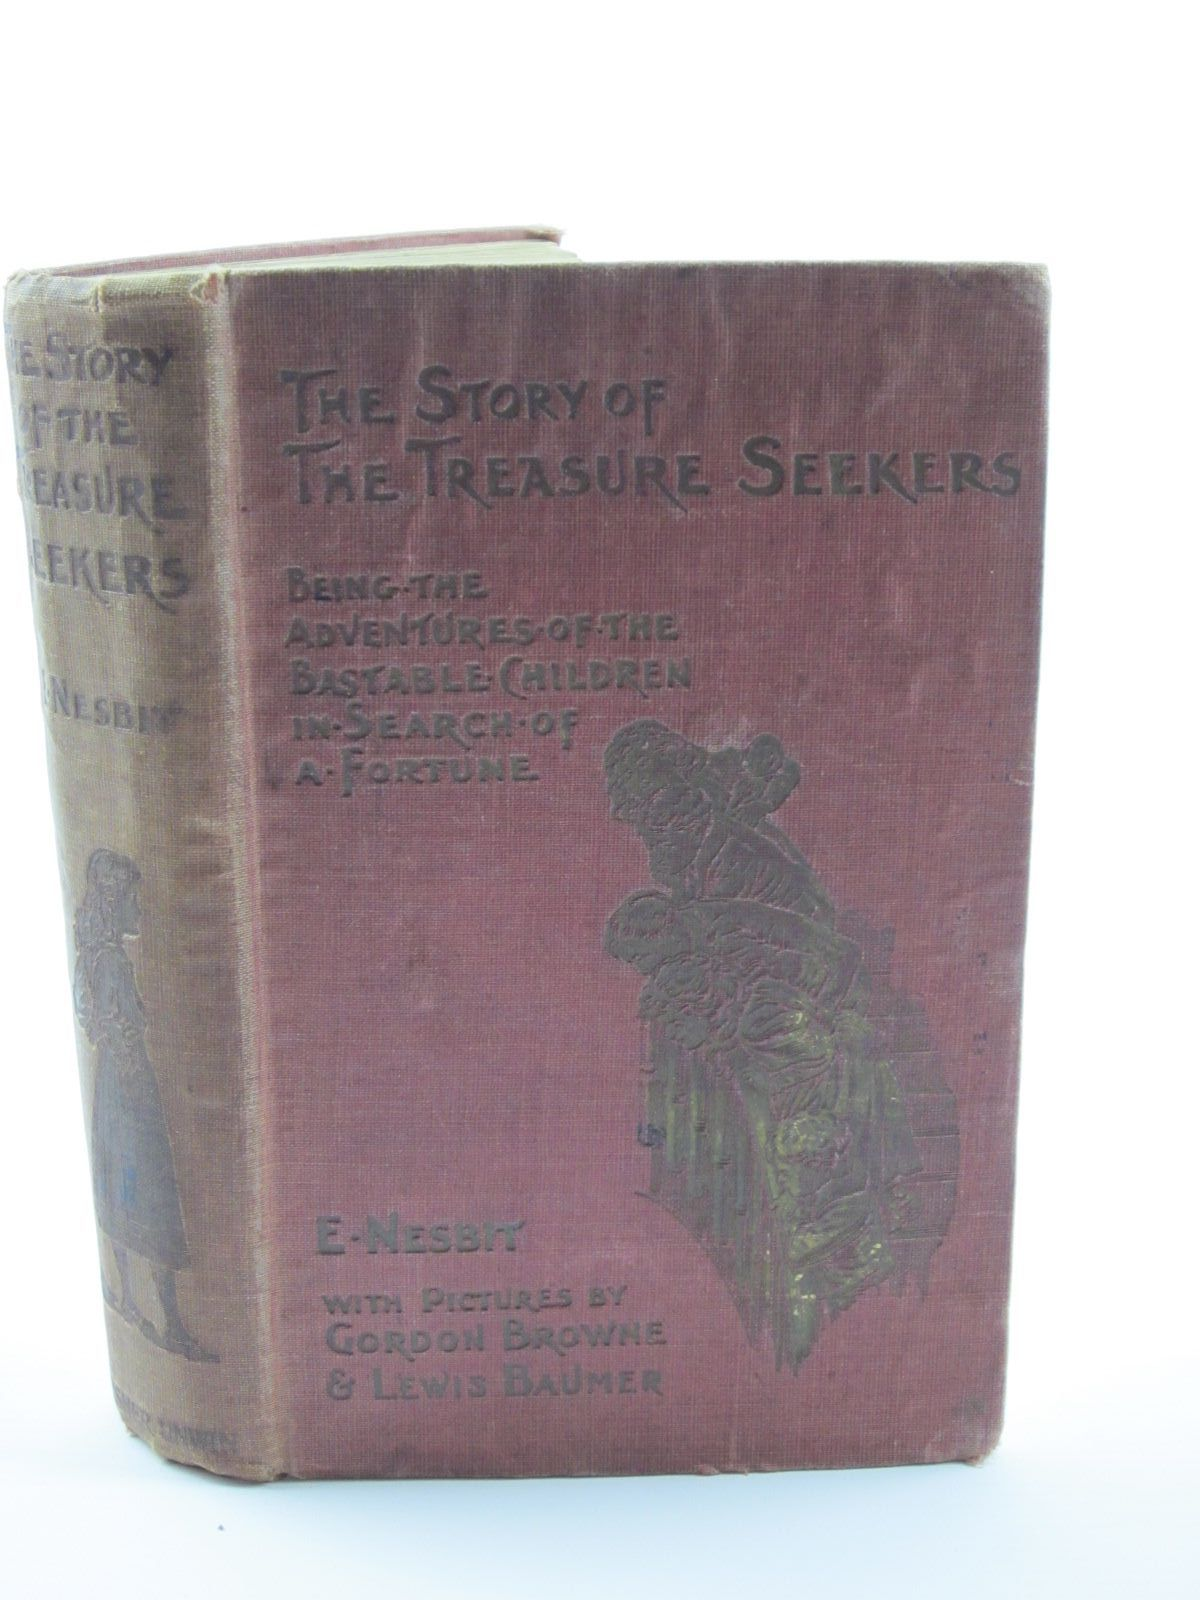 Photo of THE STORY OF THE TREASURE SEEKERS written by Nesbit, E. illustrated by Browne, Gordon Baumer, Lewis published by T. Fisher Unwin (STOCK CODE: 1309246)  for sale by Stella & Rose's Books